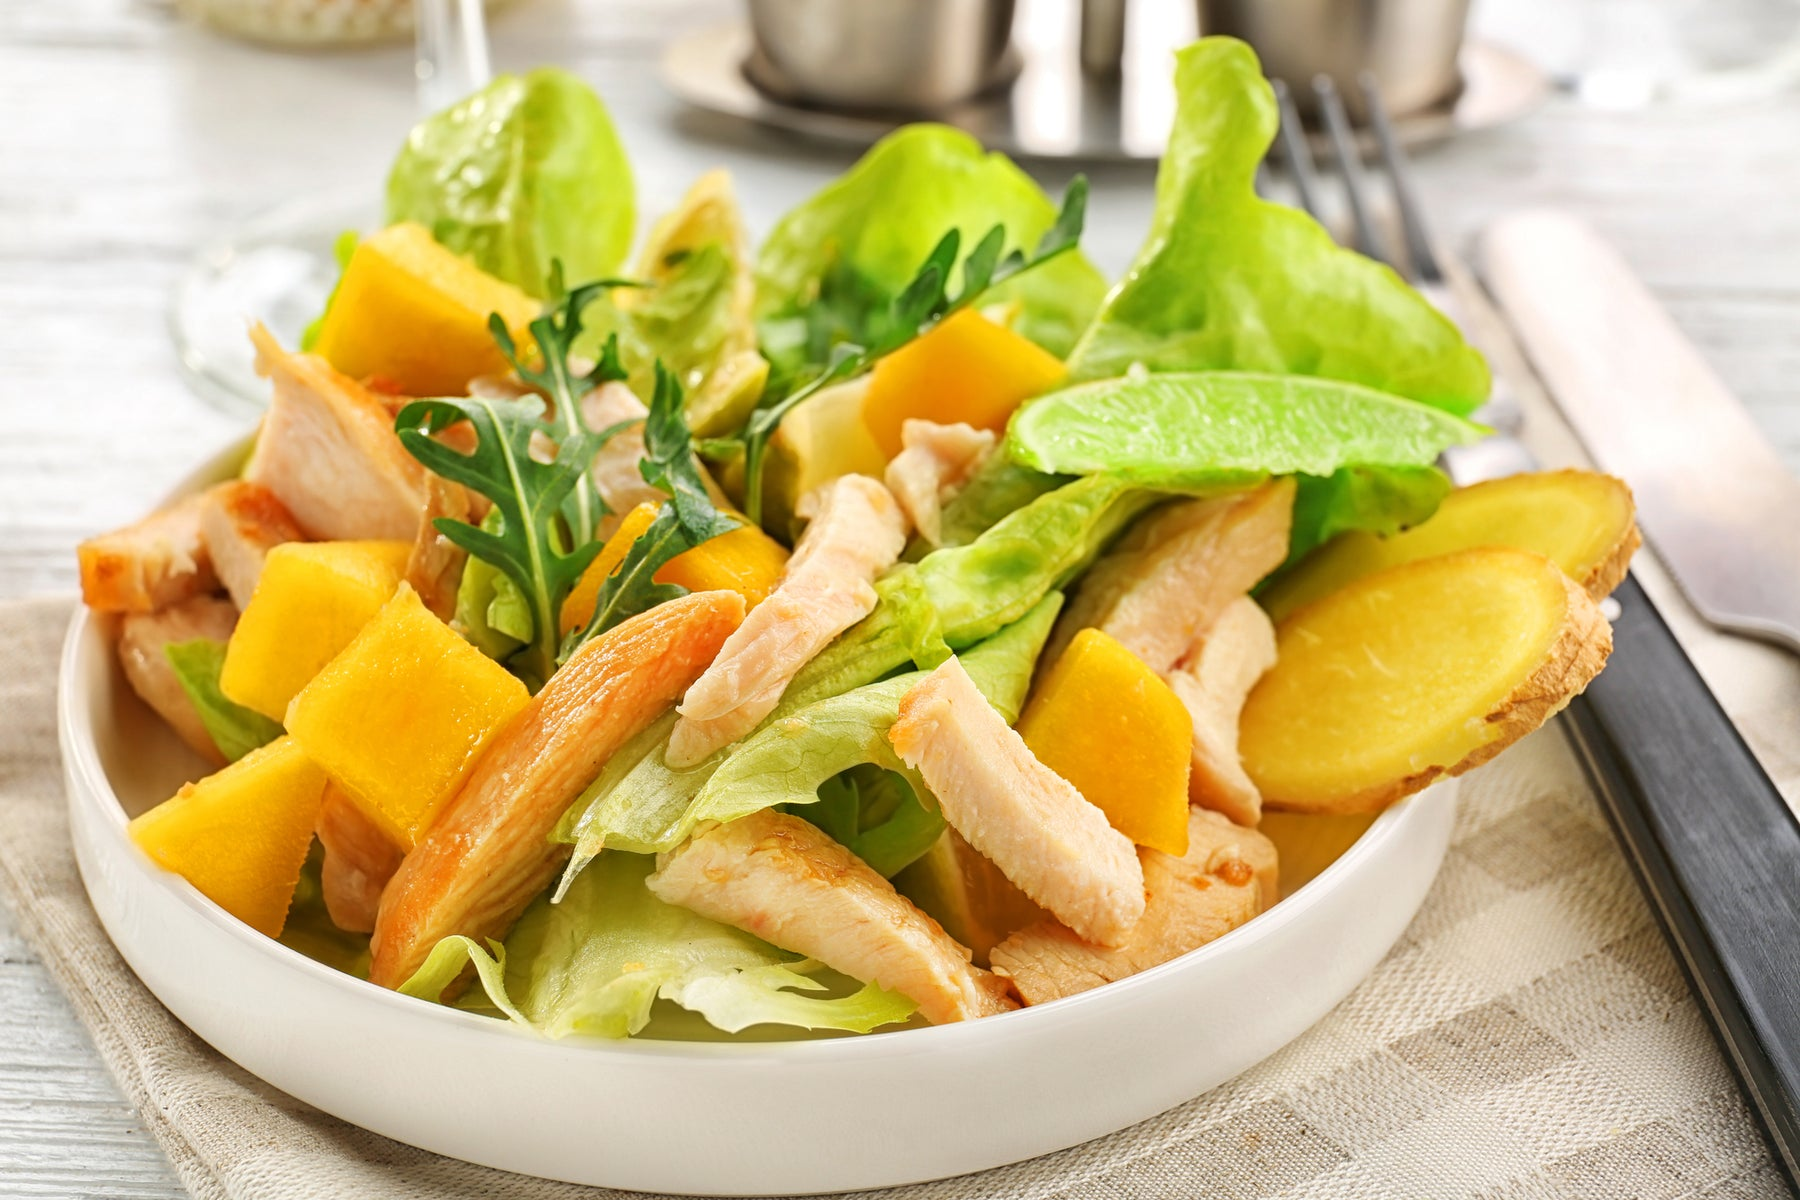 Keto Grilled Chicken Salad with Mangos and Ginger Dressing